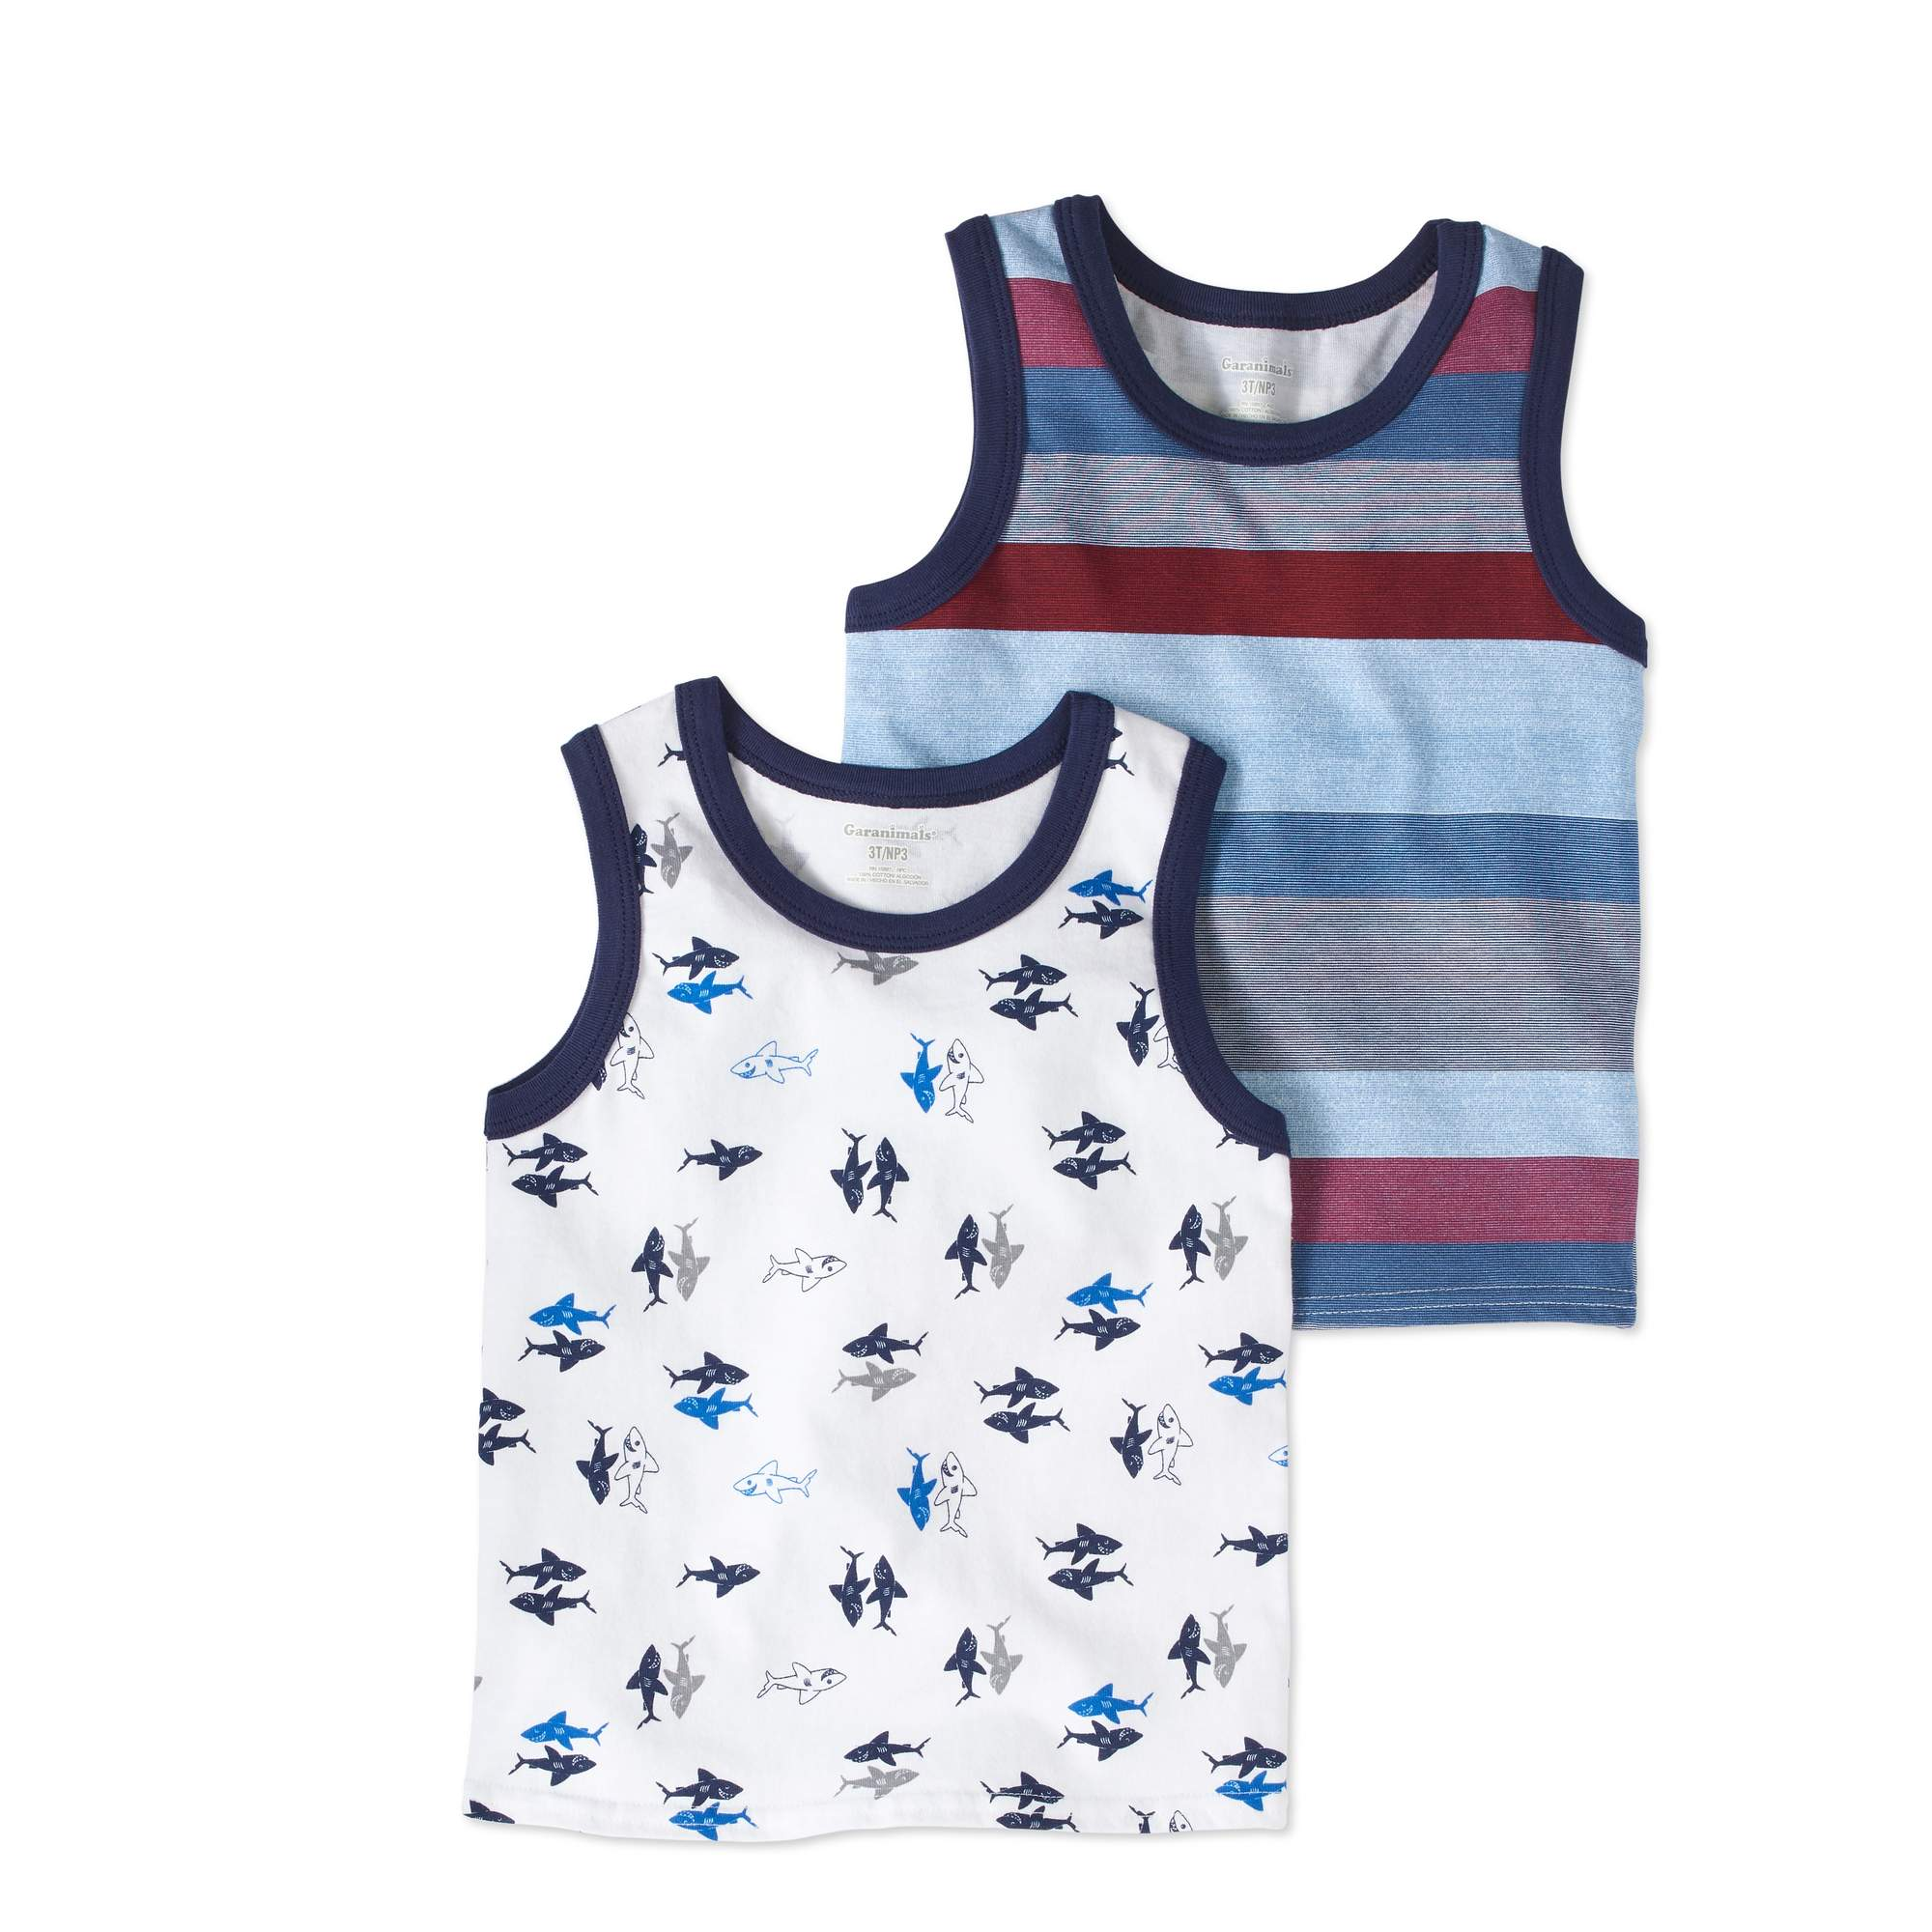 Garanimals Toddler Boys' Printed Jersey Tank Tops, 2-Pack